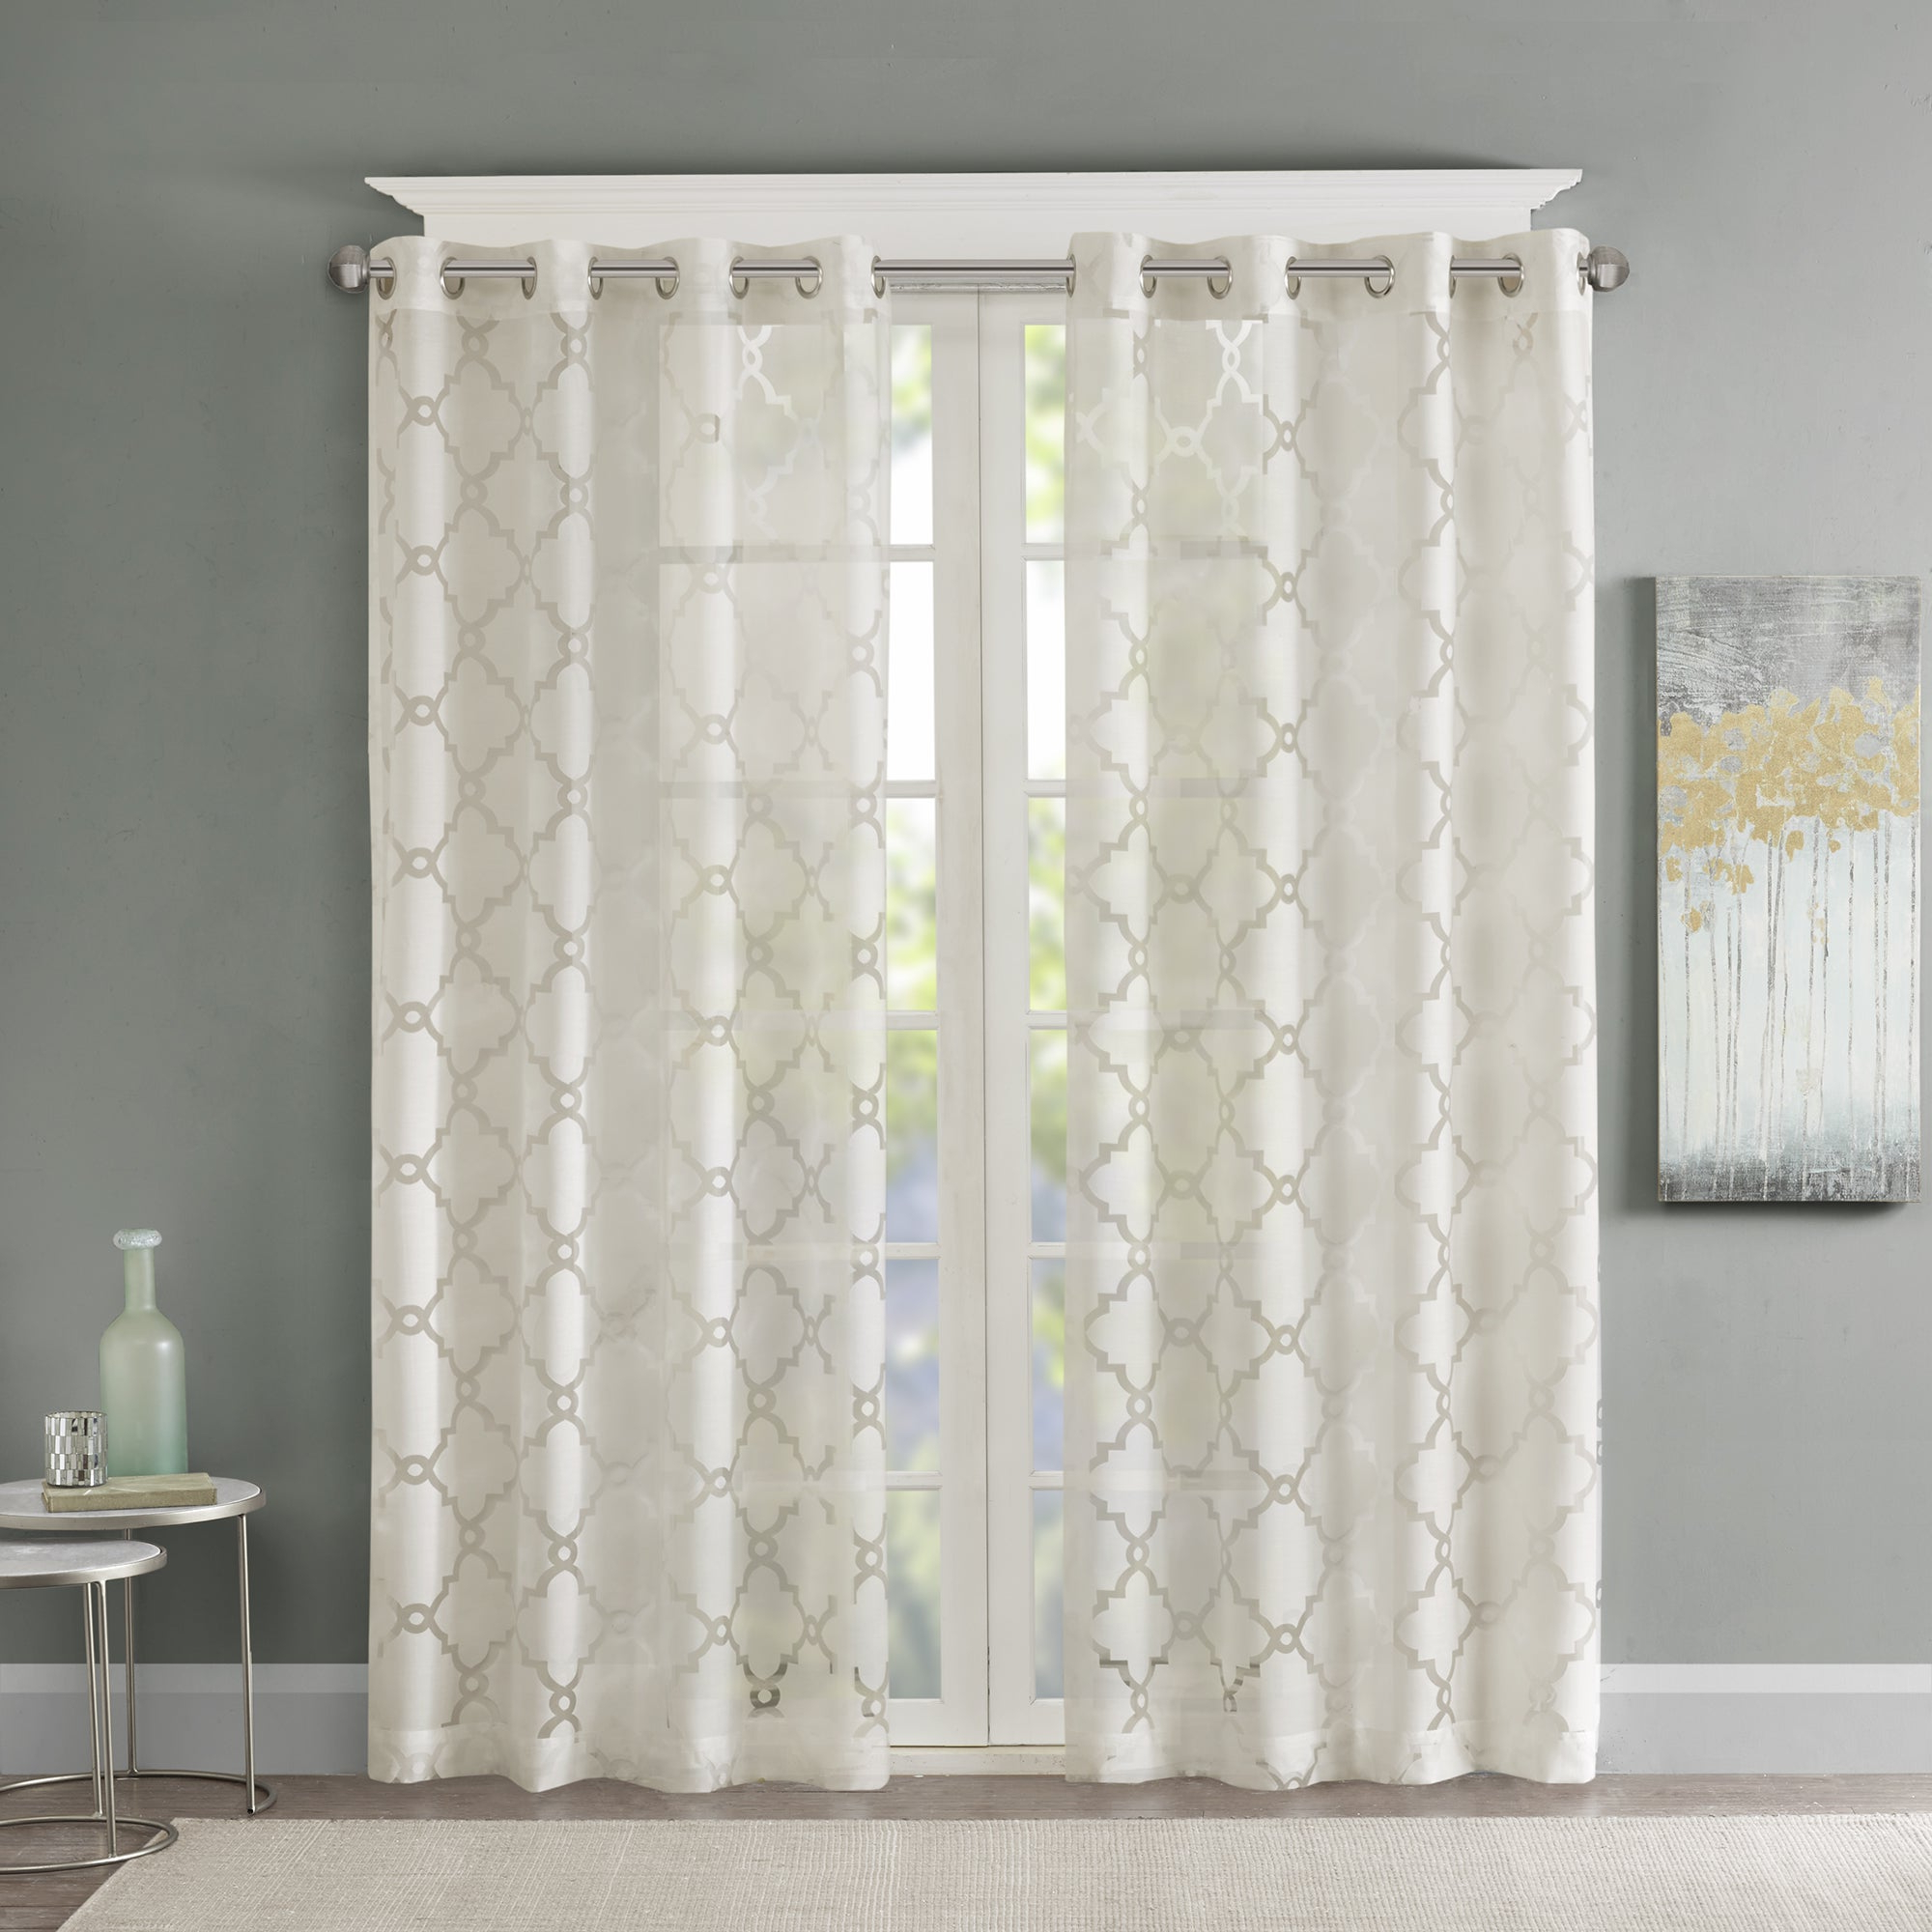 Laya Fretwork Burnout Sheer Curtain Panels Pertaining To Fashionable Madison Park Laya Fretwork Burnout Sheer Curtain Panel (View 2 of 20)